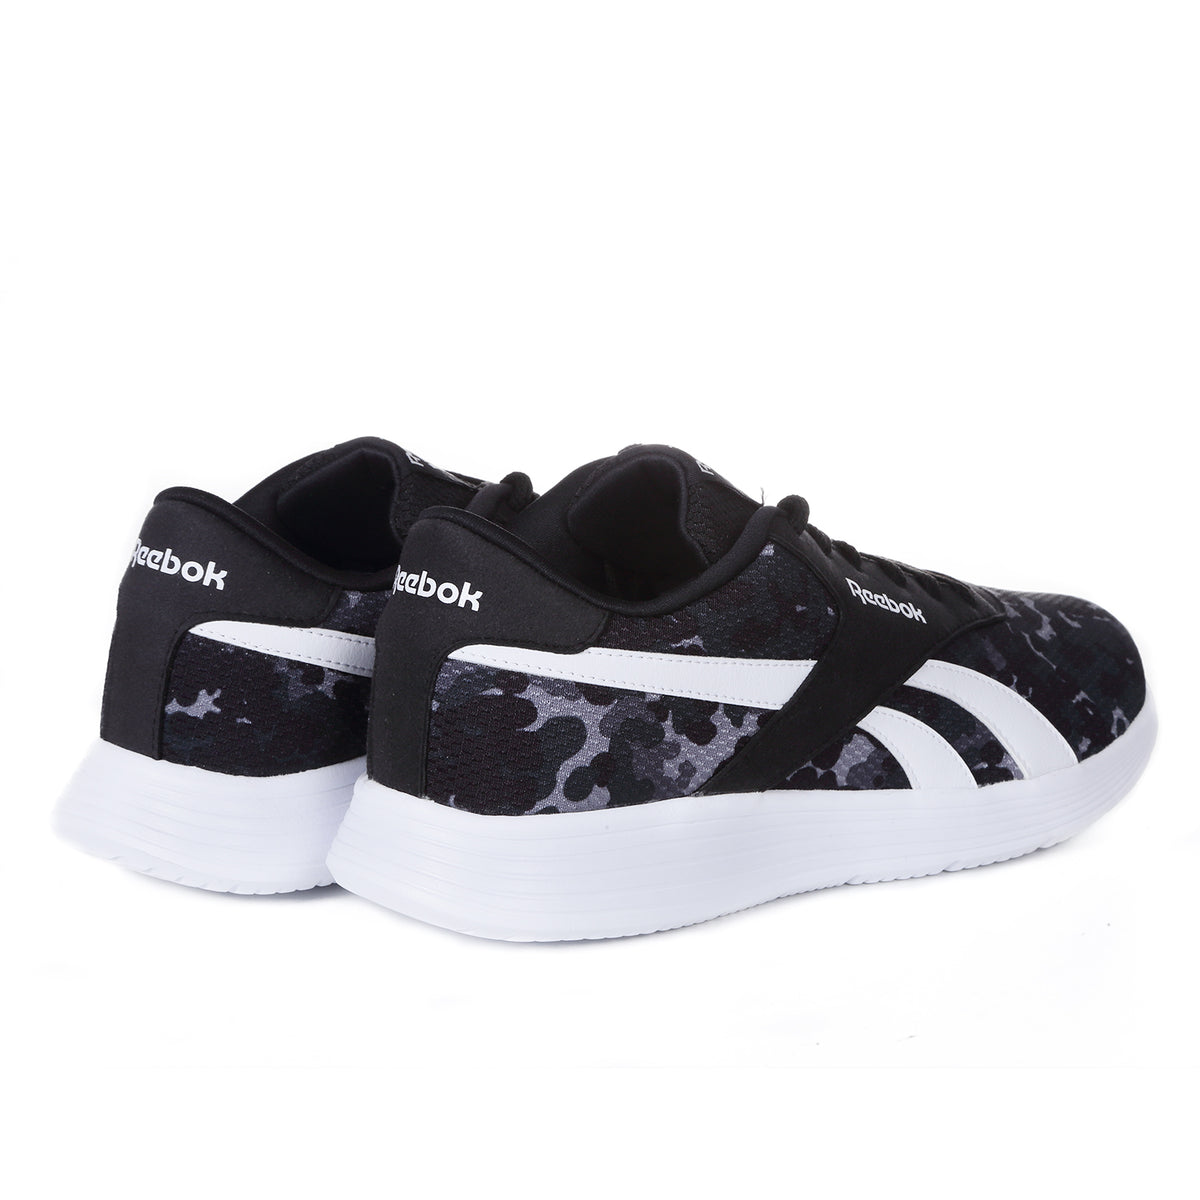 REEBOK - JUNIOR ROYAL EC RIDE CAMO - BLACK/WHITE